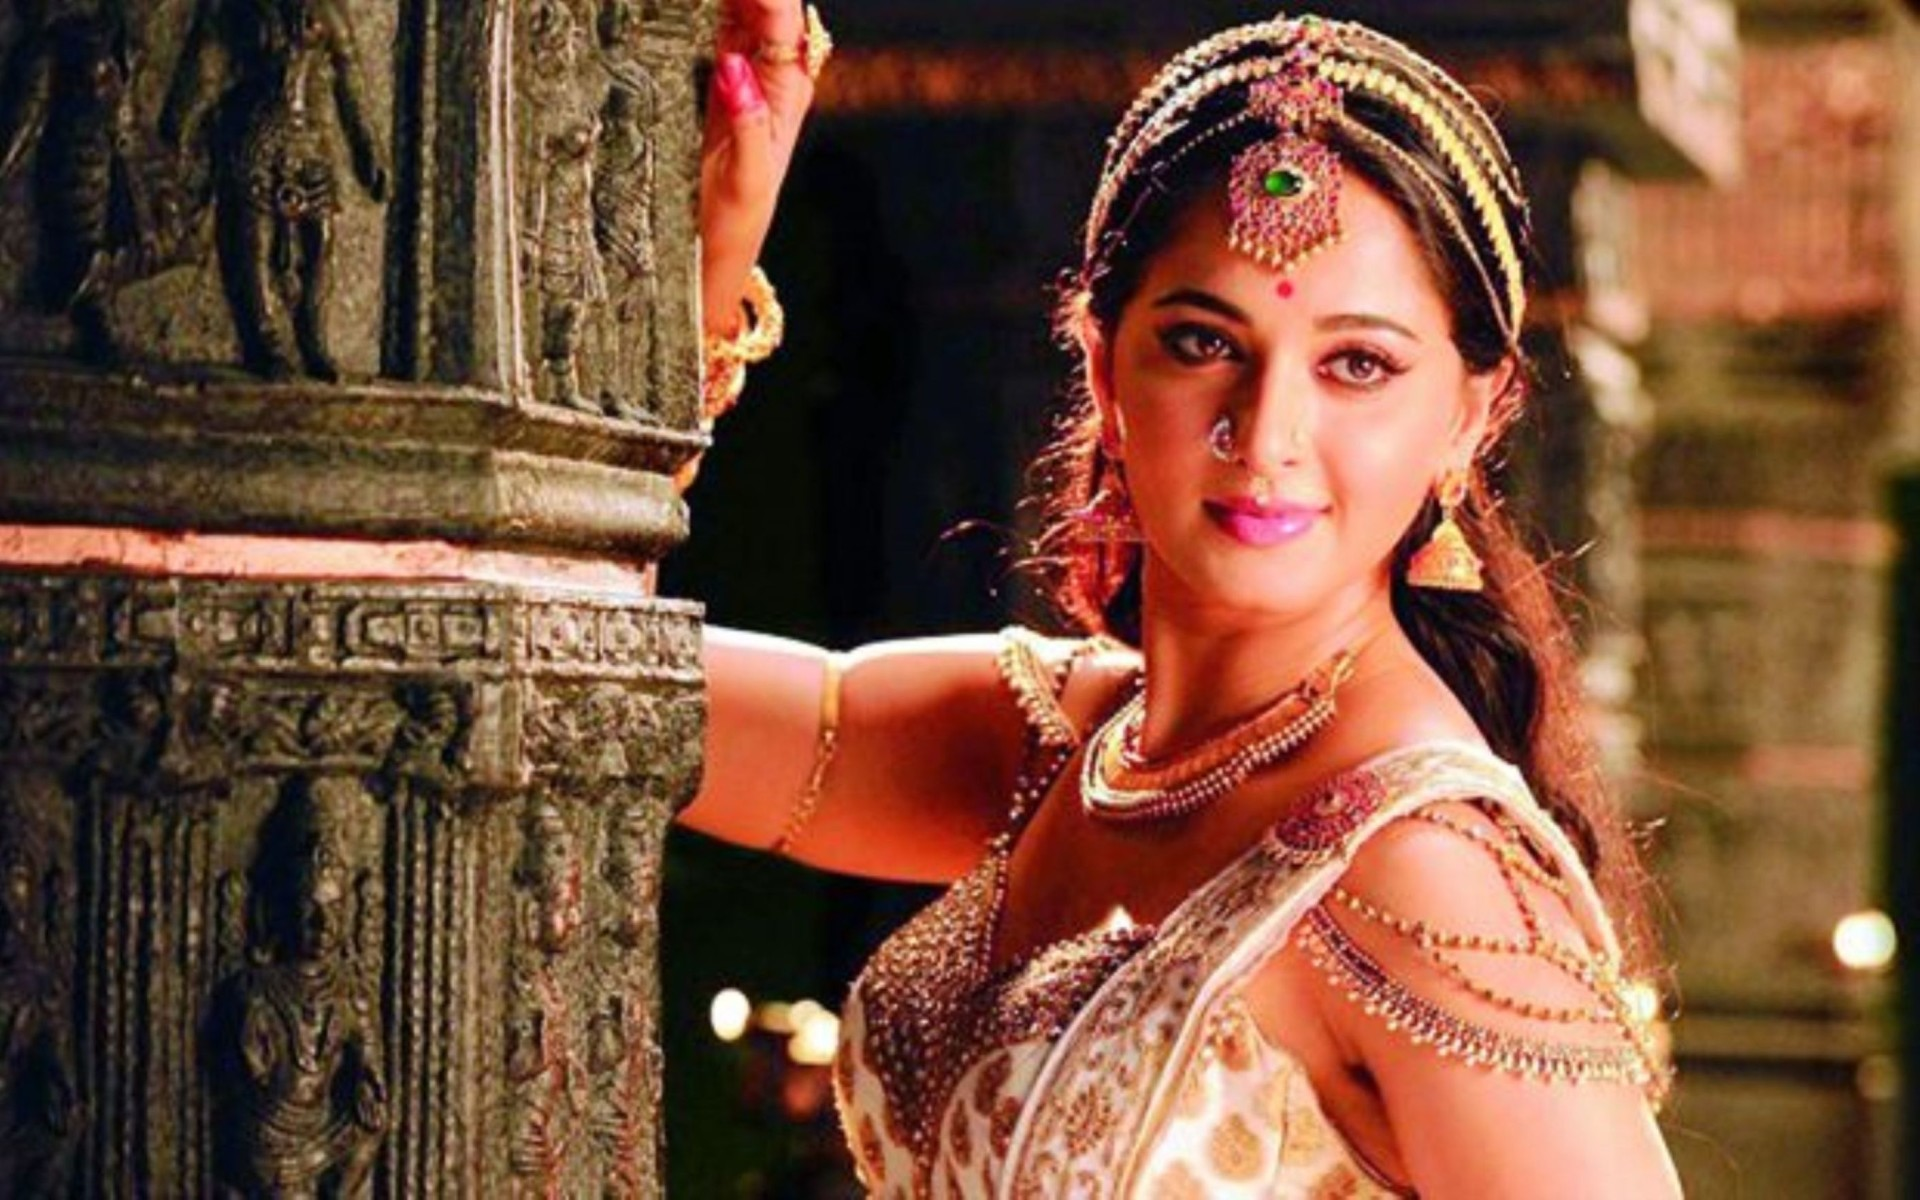 Anushka Shetty In Rudramadevi Wallpaper